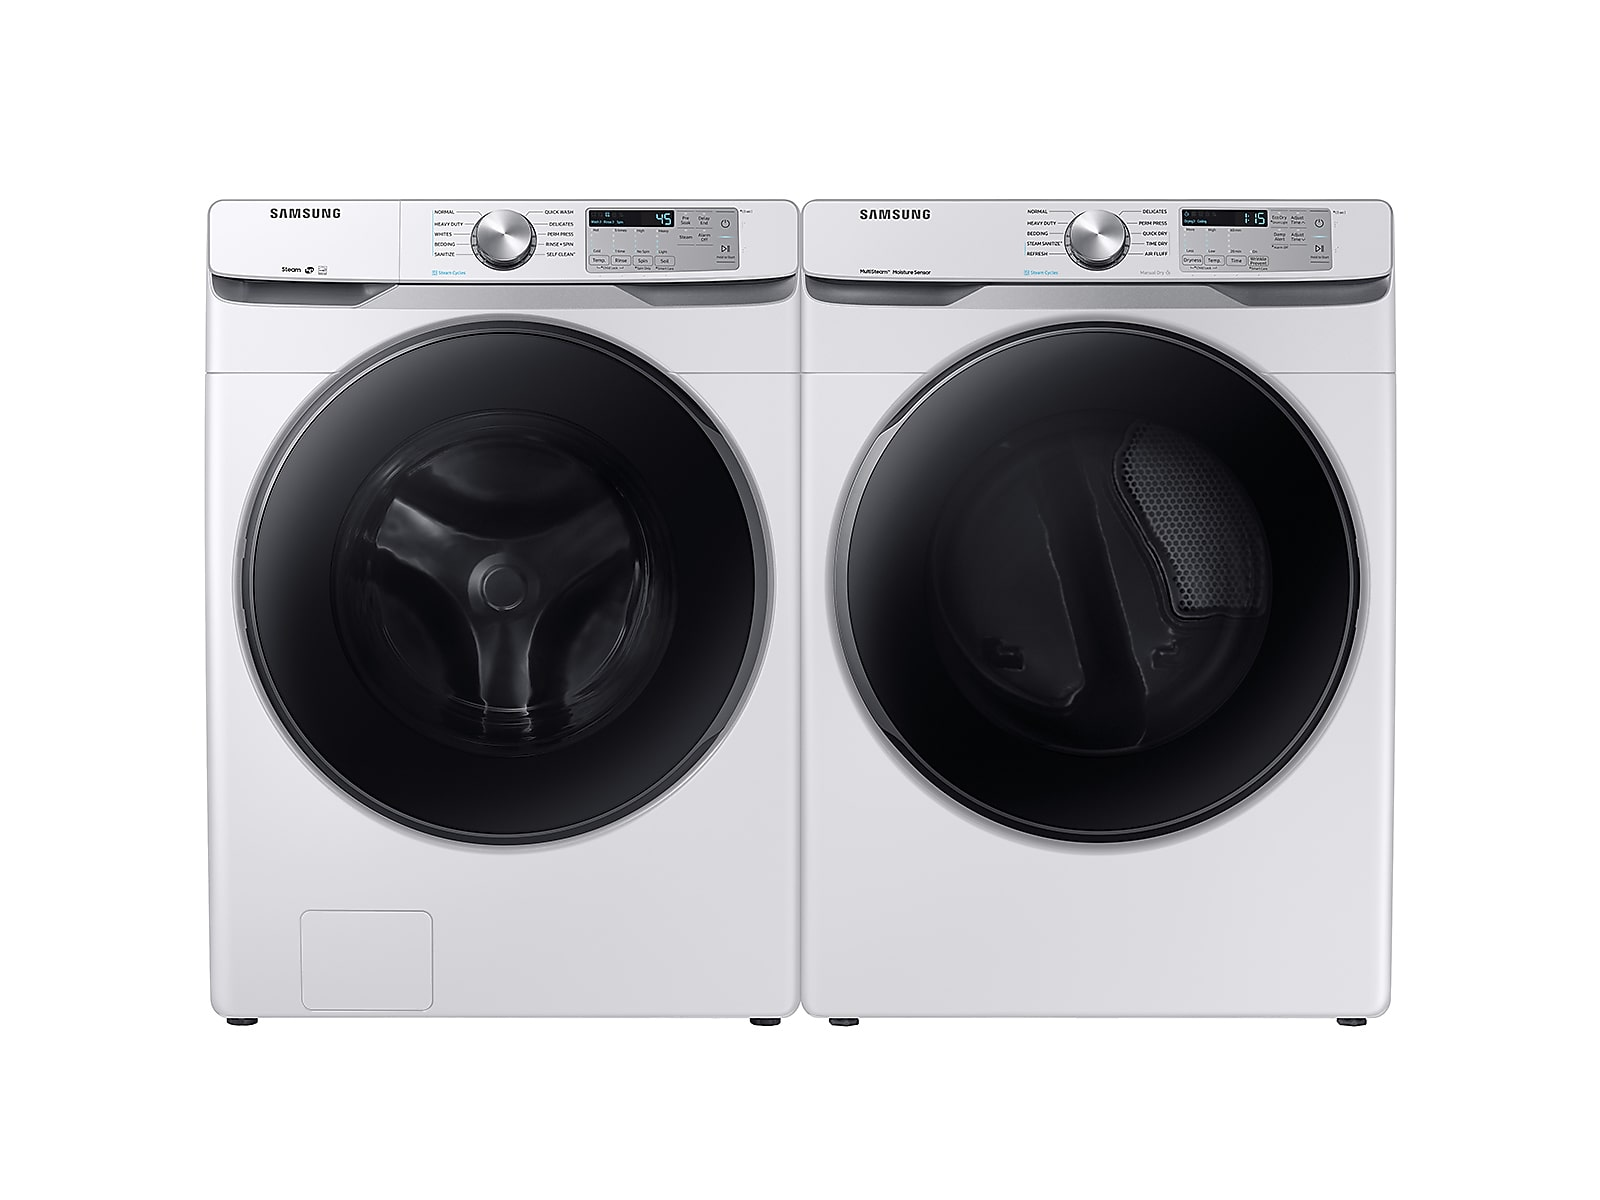 Samsung coupon: Samsung Front Load Washer & Dryer Set with Steam and Steam Sanitize+ in White(BNDL-1579764593227)